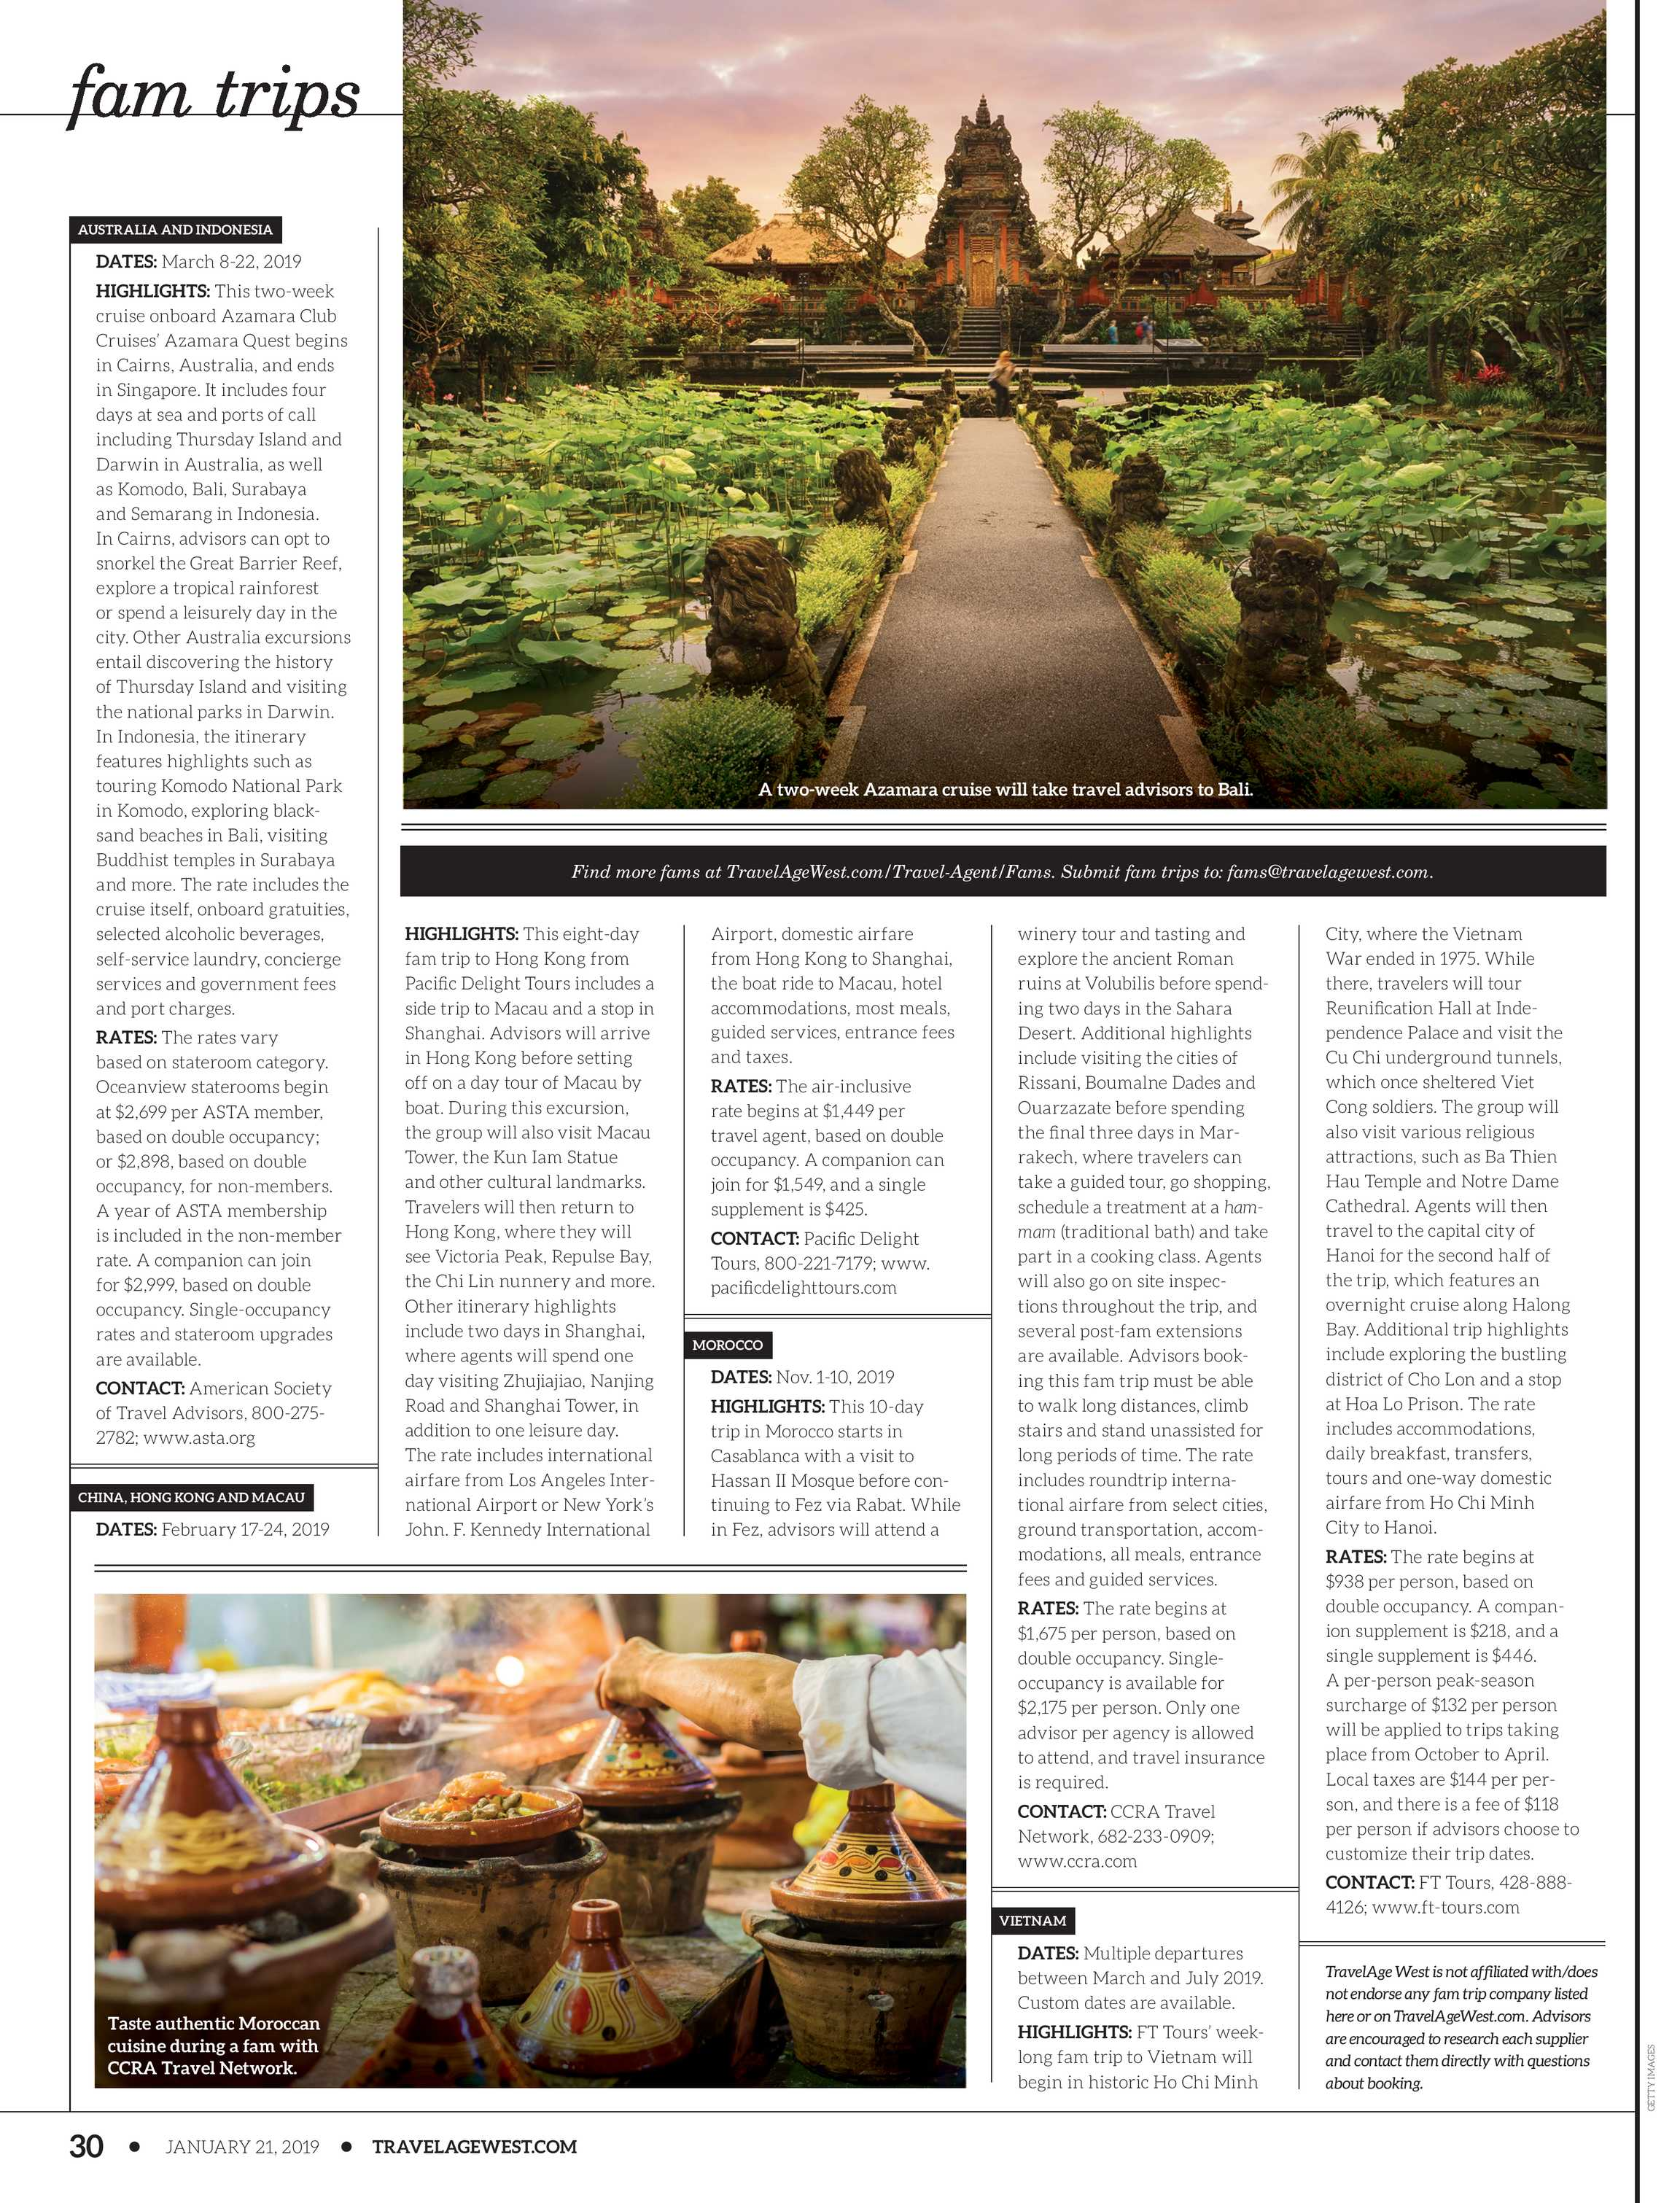 Travel Age West - January 21, 2019 - page 30